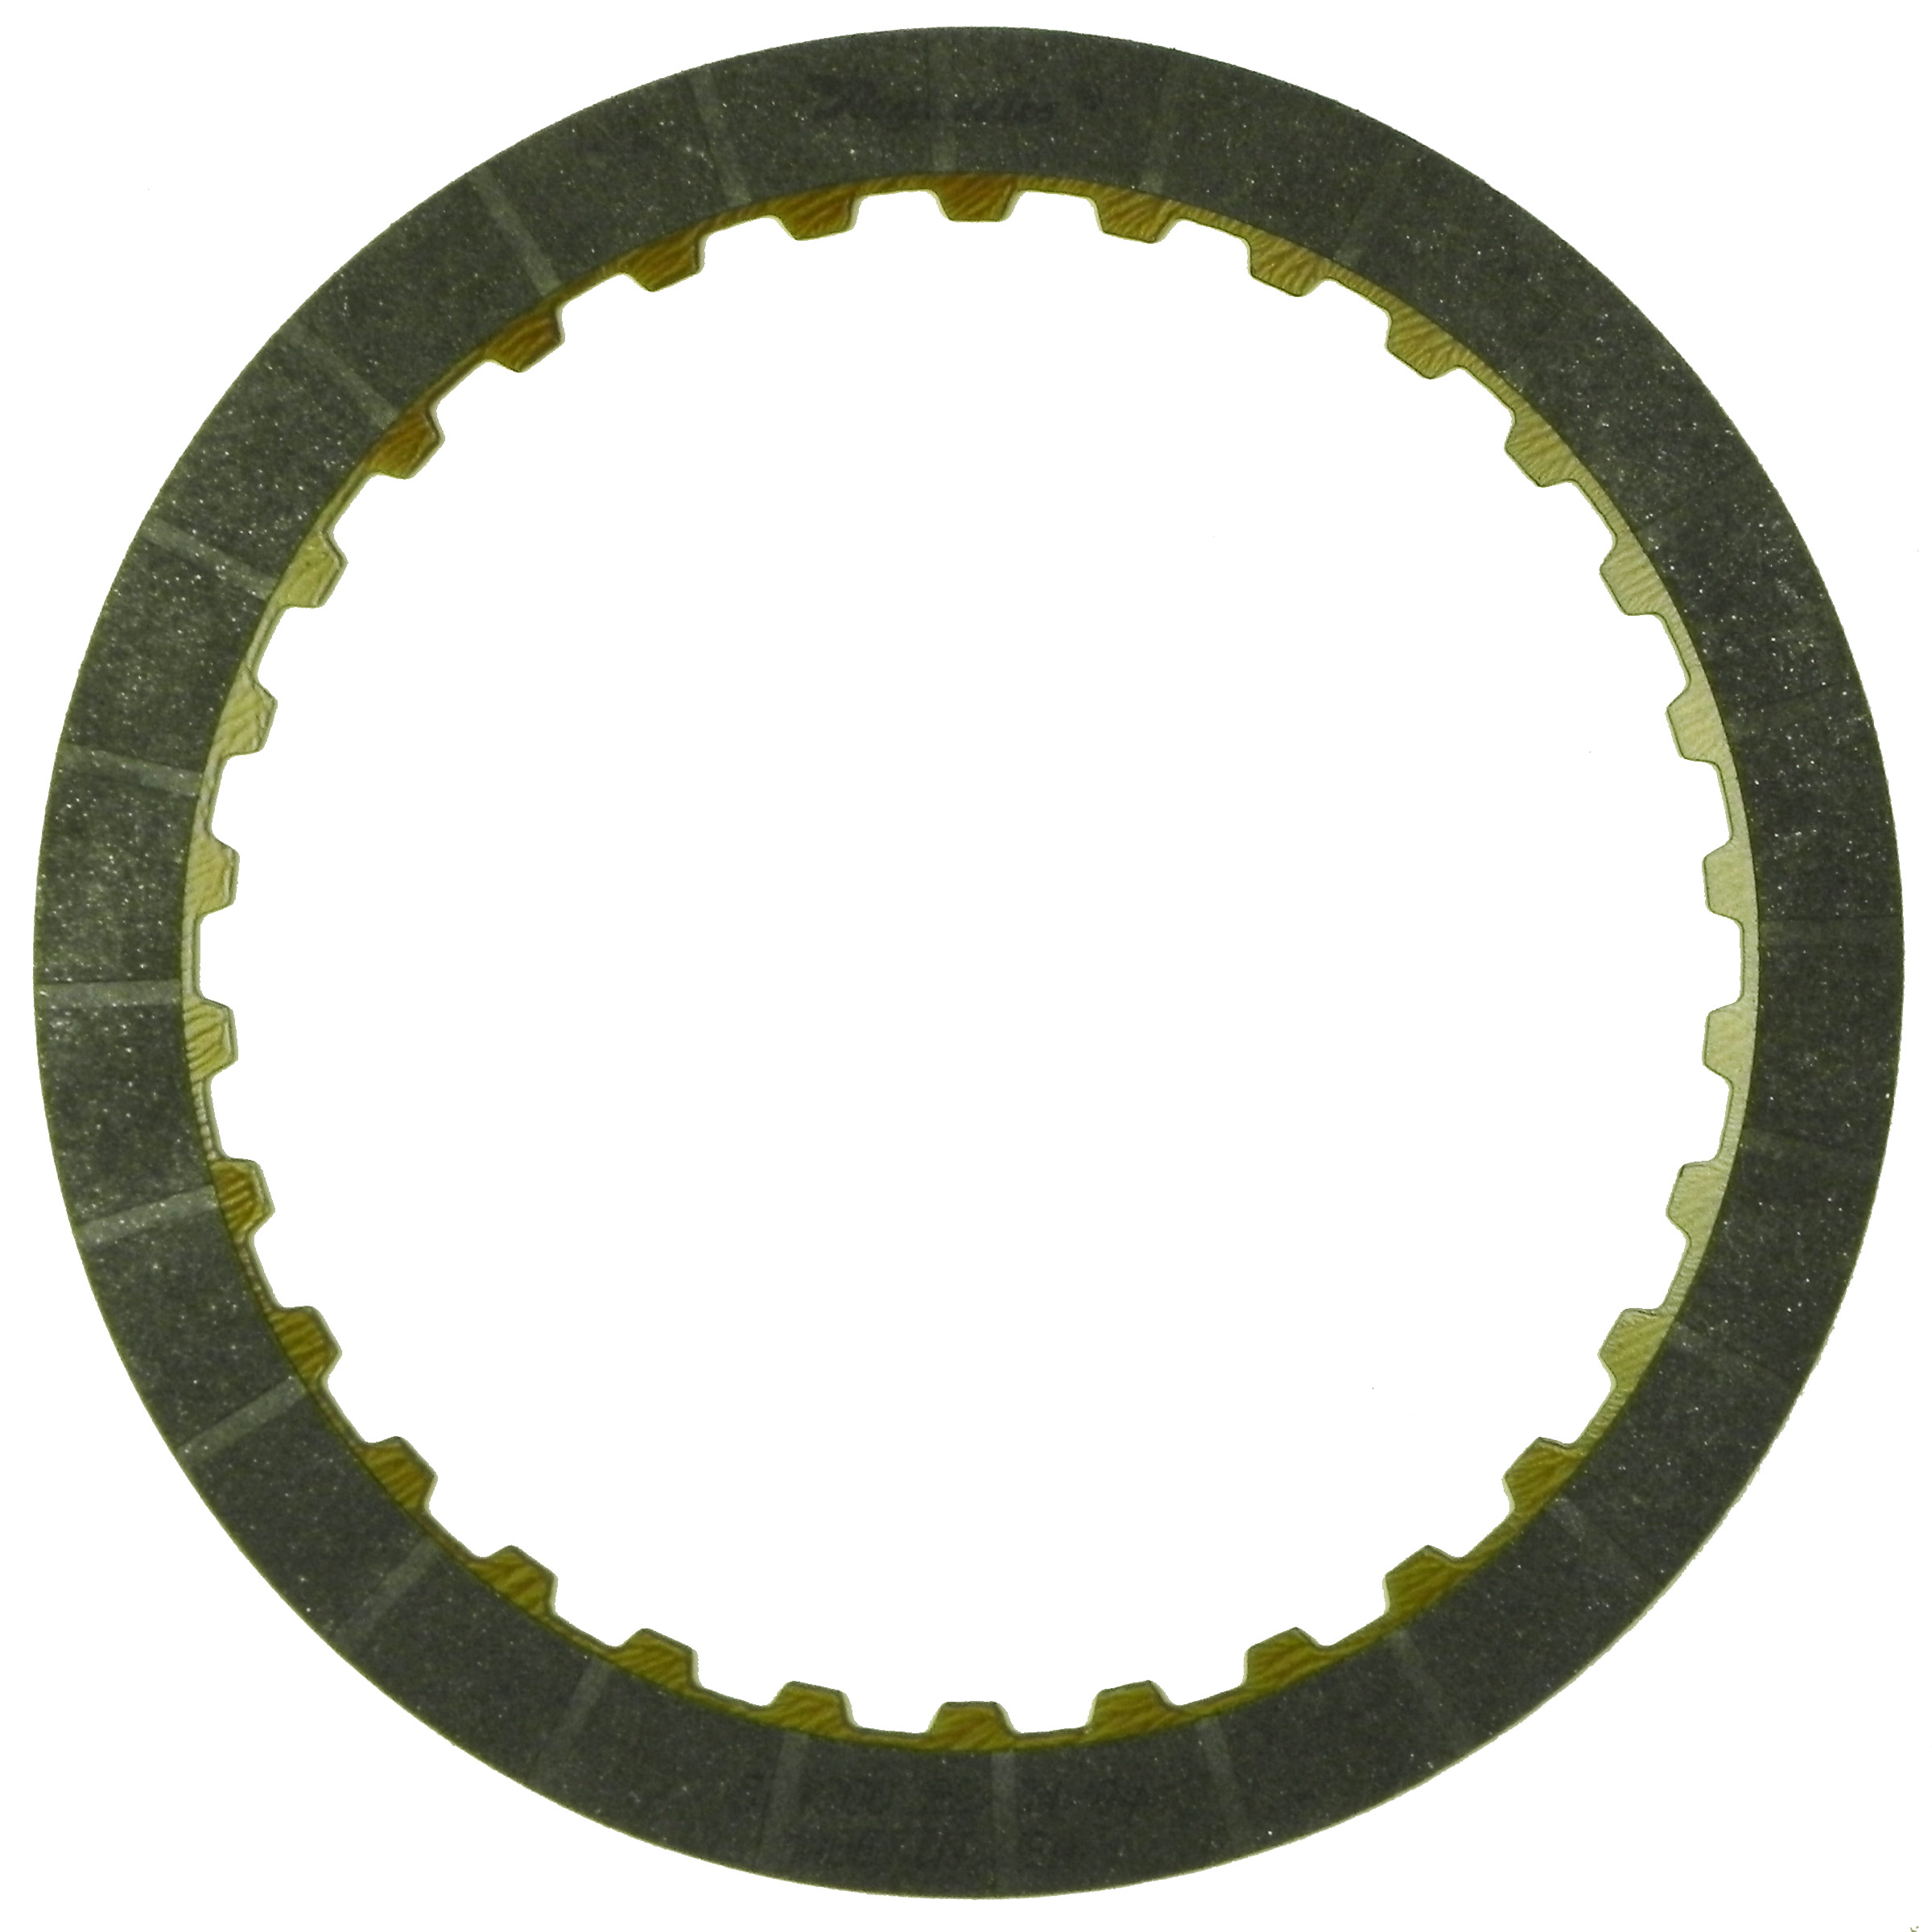 R574200 | 1992-2003 Friction Clutch Plate High Energy A (Forward), E (3/4), F (Overdrive/5th) High Energy